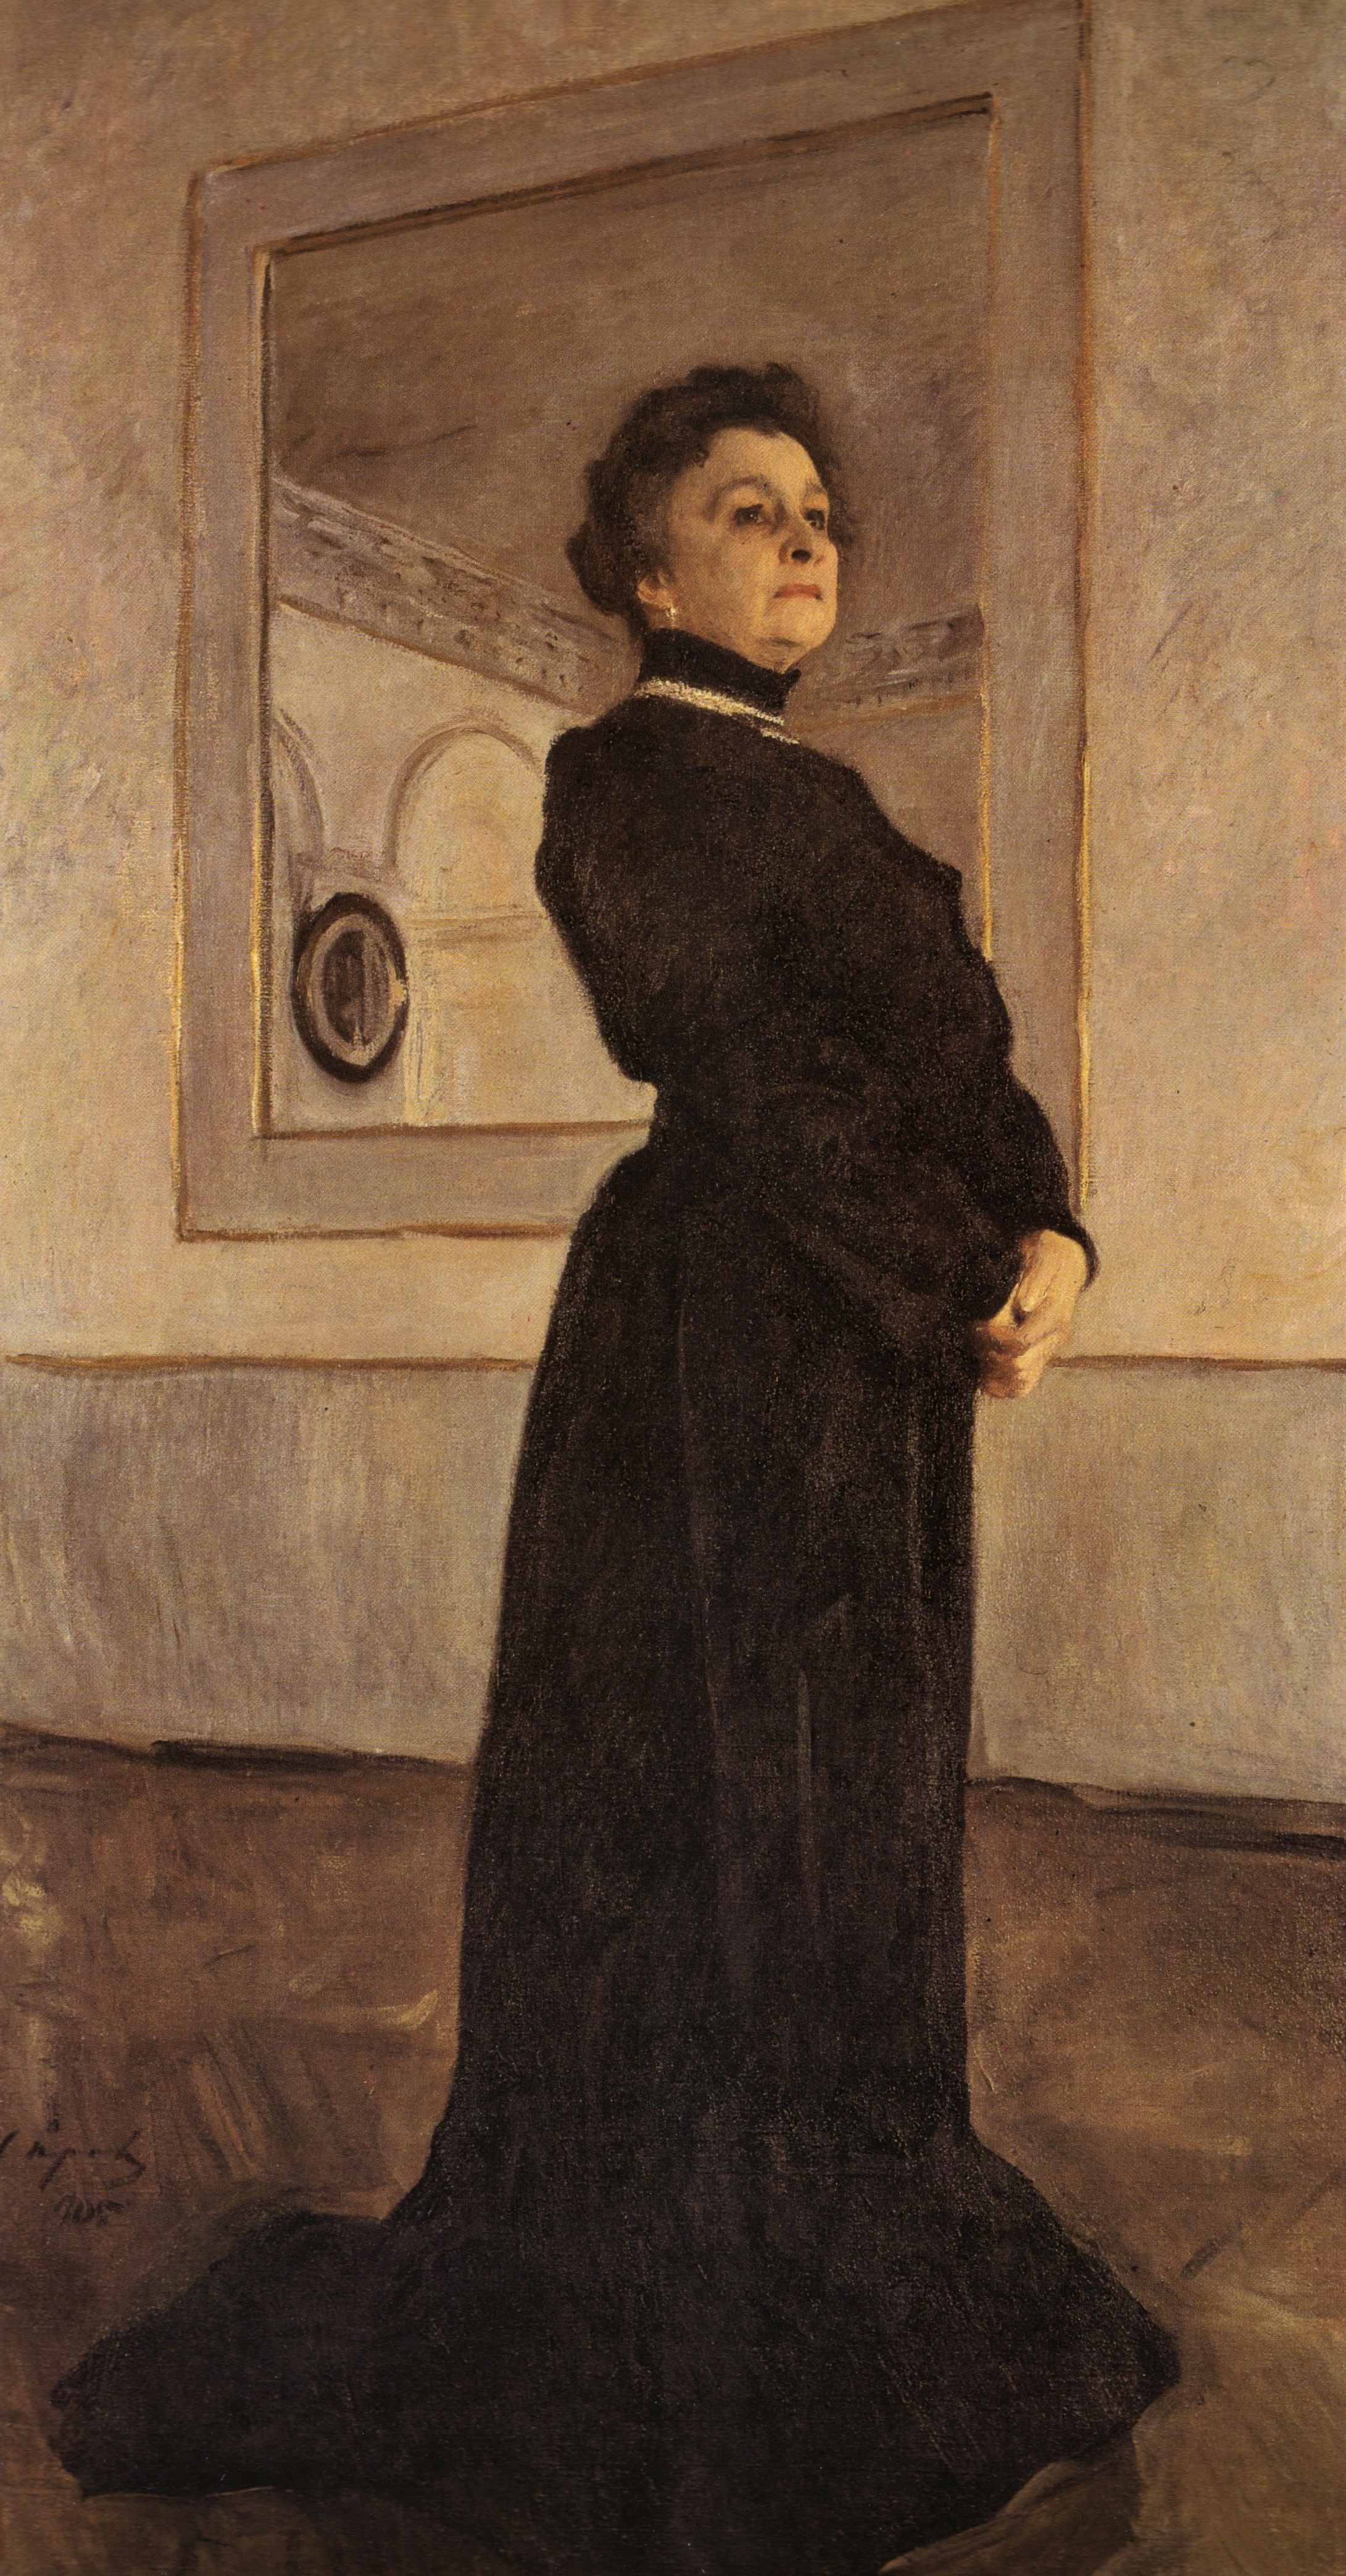 Valentin Serov, Portrait Of Maria Yermolova, 1905. Oil On Canvas. The  Tretyakov